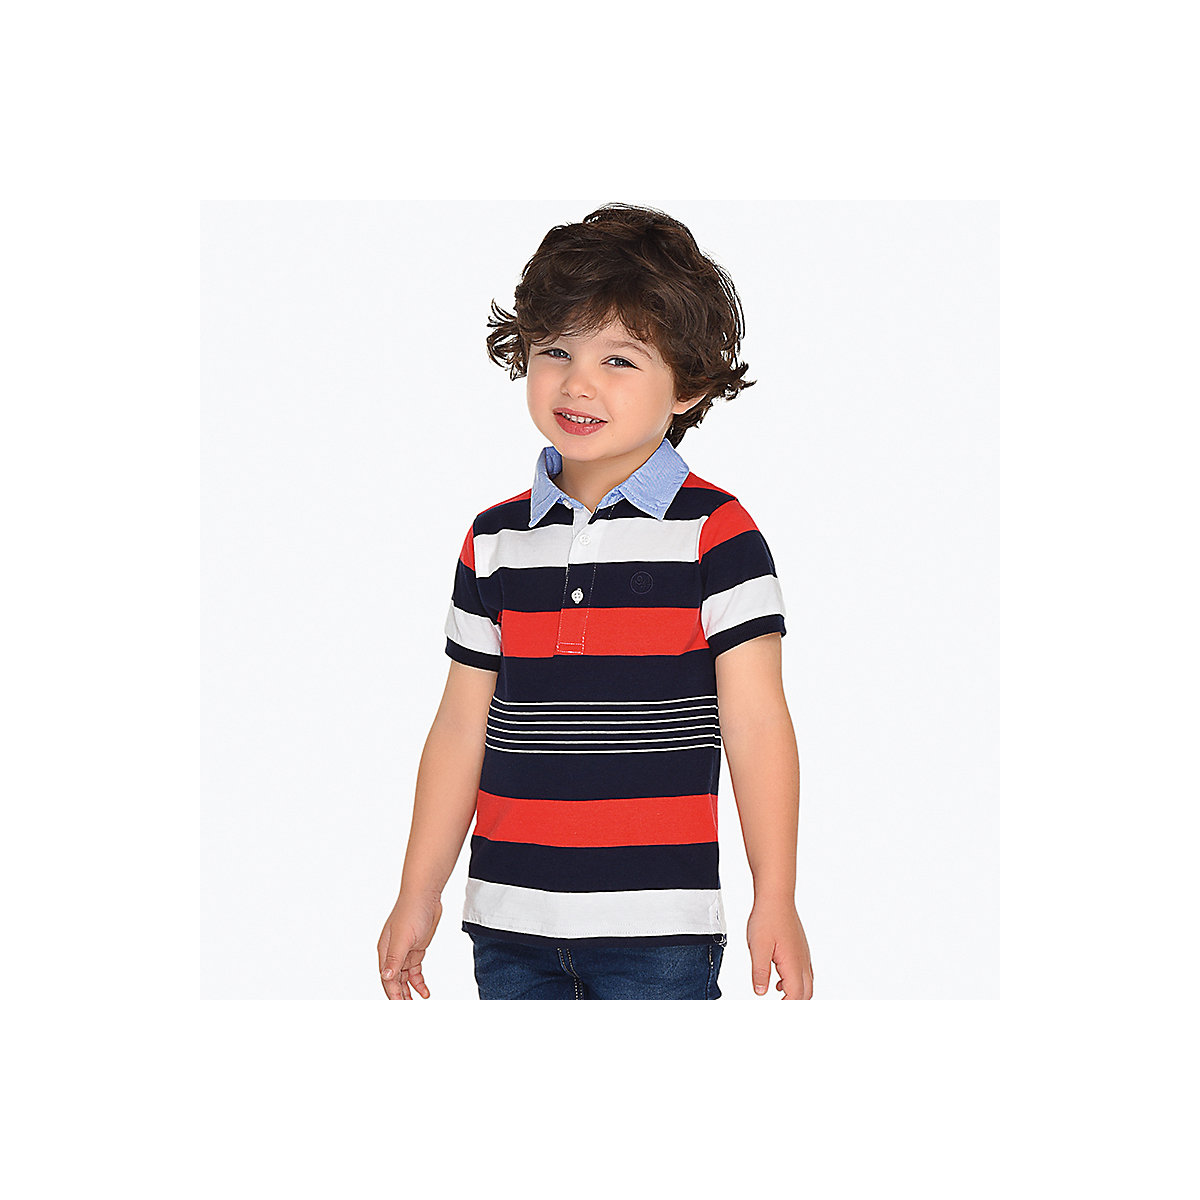 MAYORAL Polo Shirts 10693274 children clothing t-shirt shirt the print for boys